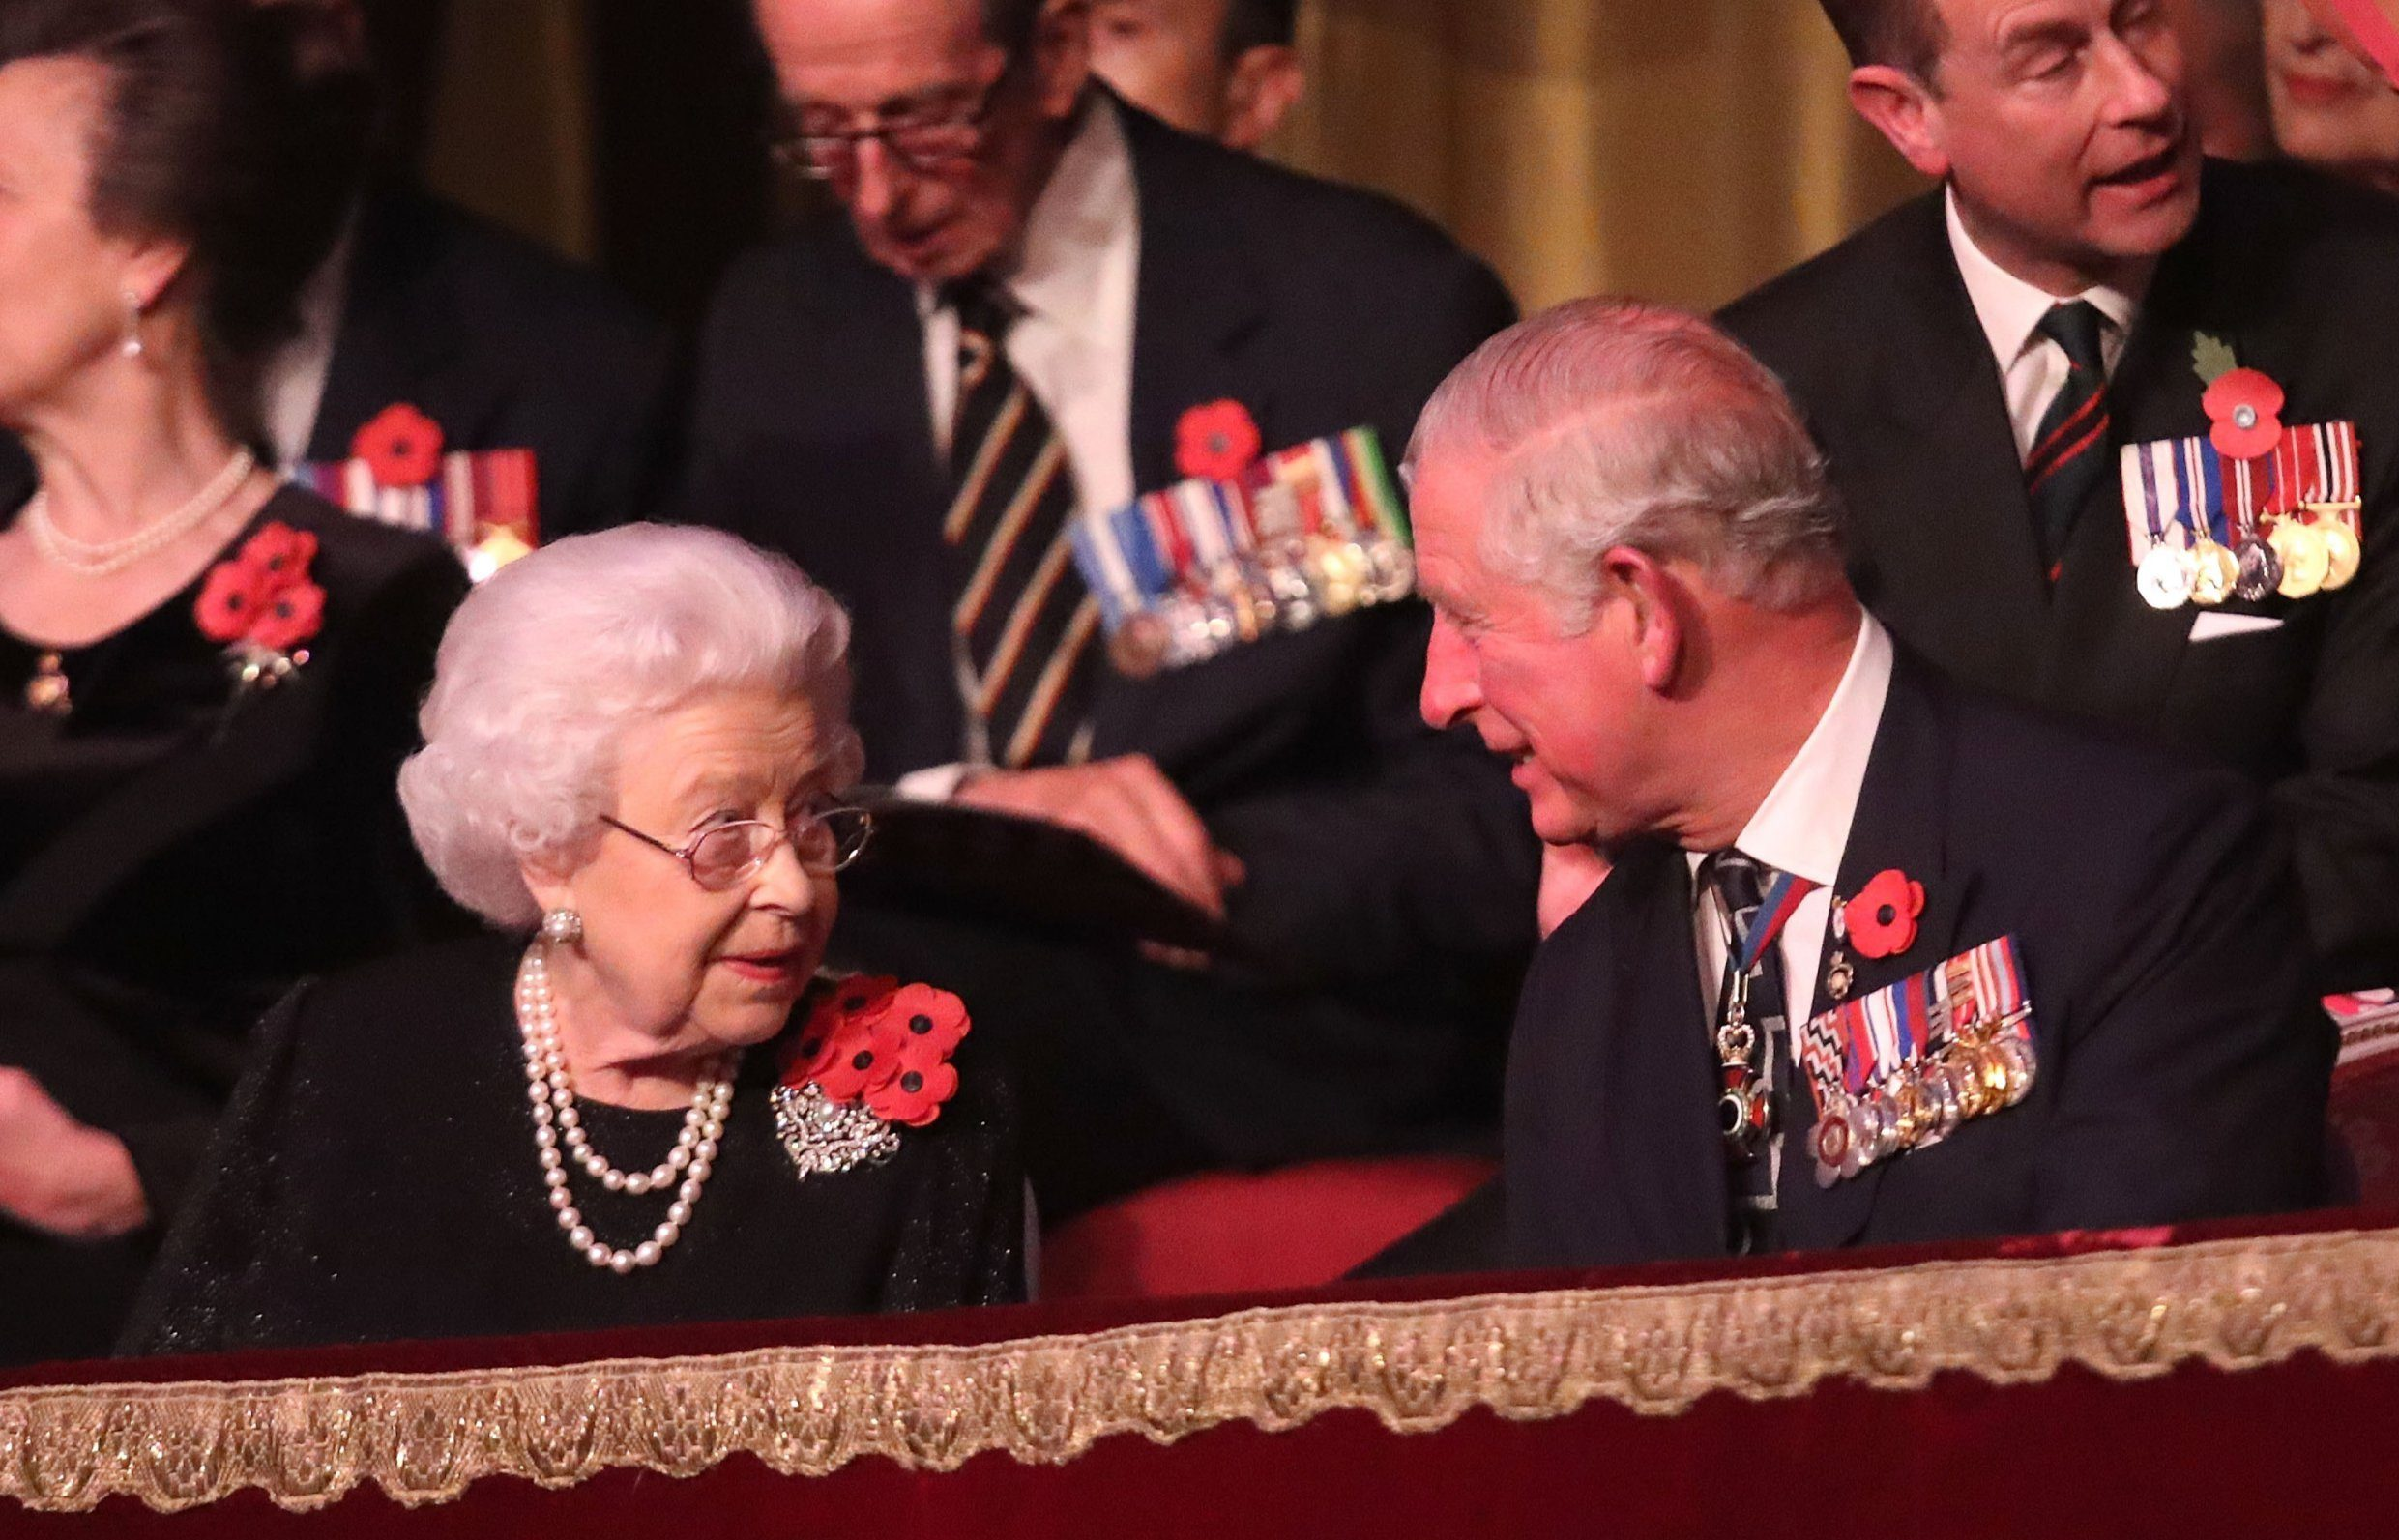 LONDON, ENGLAND - NOVEMBER 10: Queen Elizabeth II and Prince Charles, Prince of Wales attend the Royal British Legion Festival of Remembrance at the Royal Albert Hall on November 10, 2018 in London, England. The Queen and members of the Royal Family are attending the annual Festival of Remembrance to commemorate all those who have lost their lives in conflicts and will mark 100 years since the end of the First World War. (Photo by Chris Jackson/Getty Images)